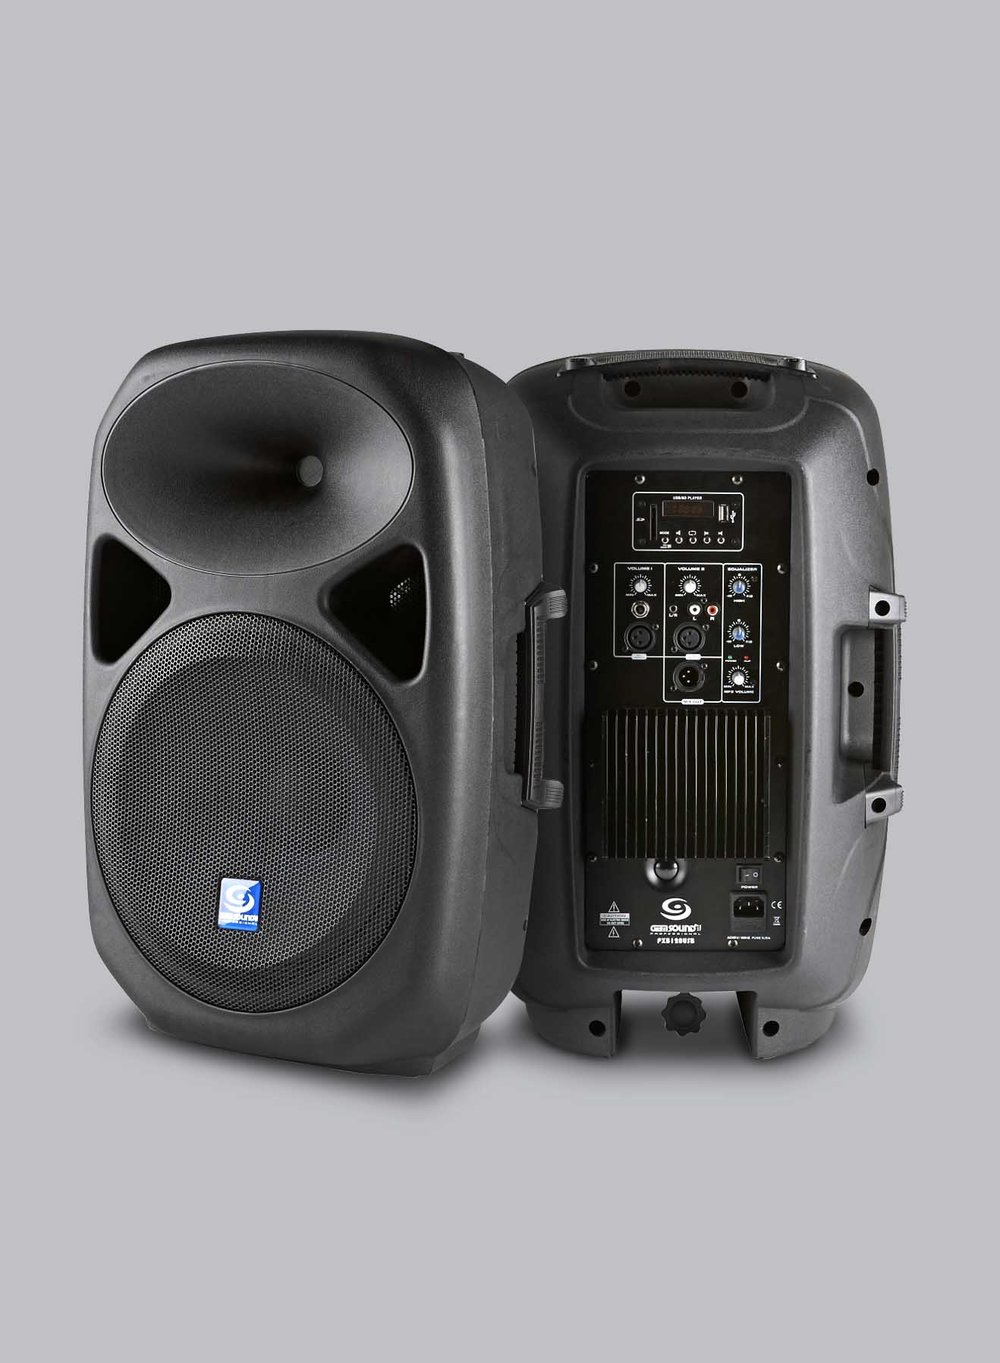 PXB120USB /PXB150USB - • Powered Speaker with USB and SD Media Player• 2-way professional speaker, trapezional design• ABS impact resistant light weight system• Extreme powerful woofer• Wide dispersion horn• LED display• Includes remote controlLearn More